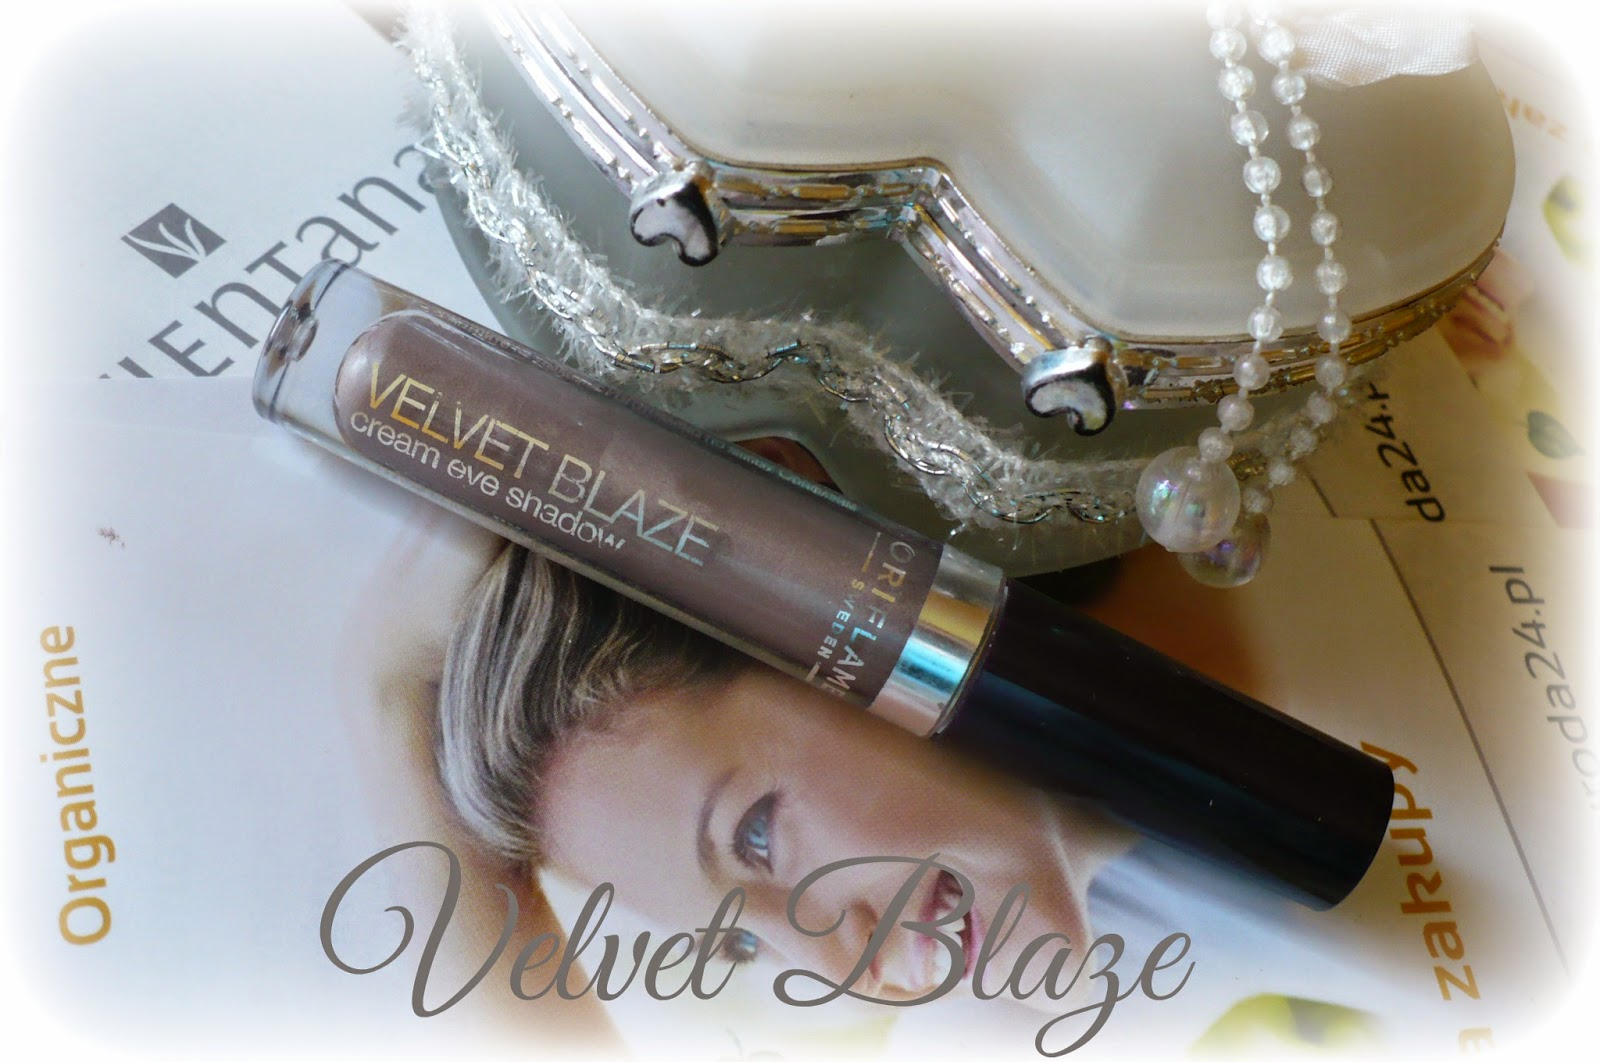 Velvet Blaze Cream Eye Shadow :)